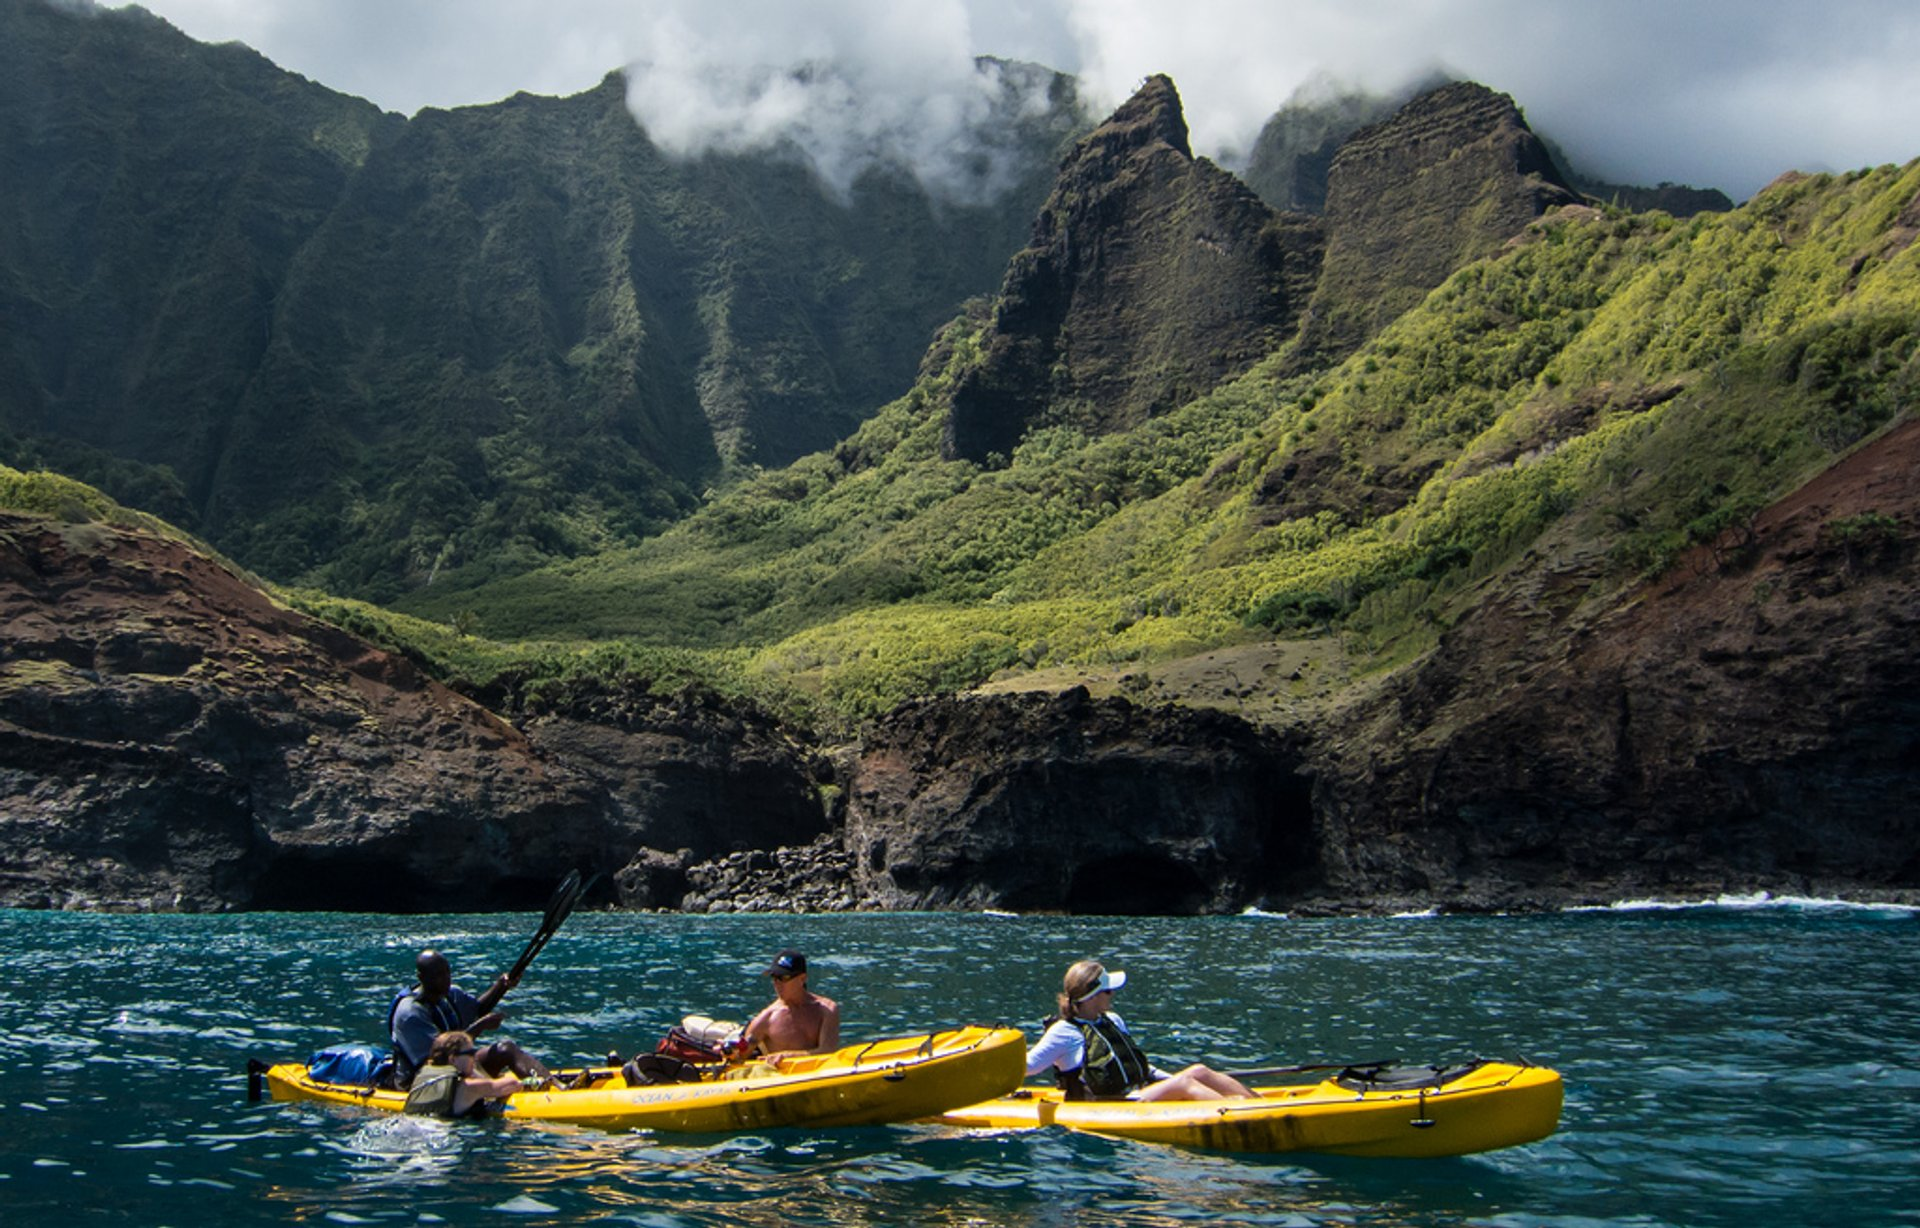 Kayaking and Canoeing in Hawaii 2020 - Best Time